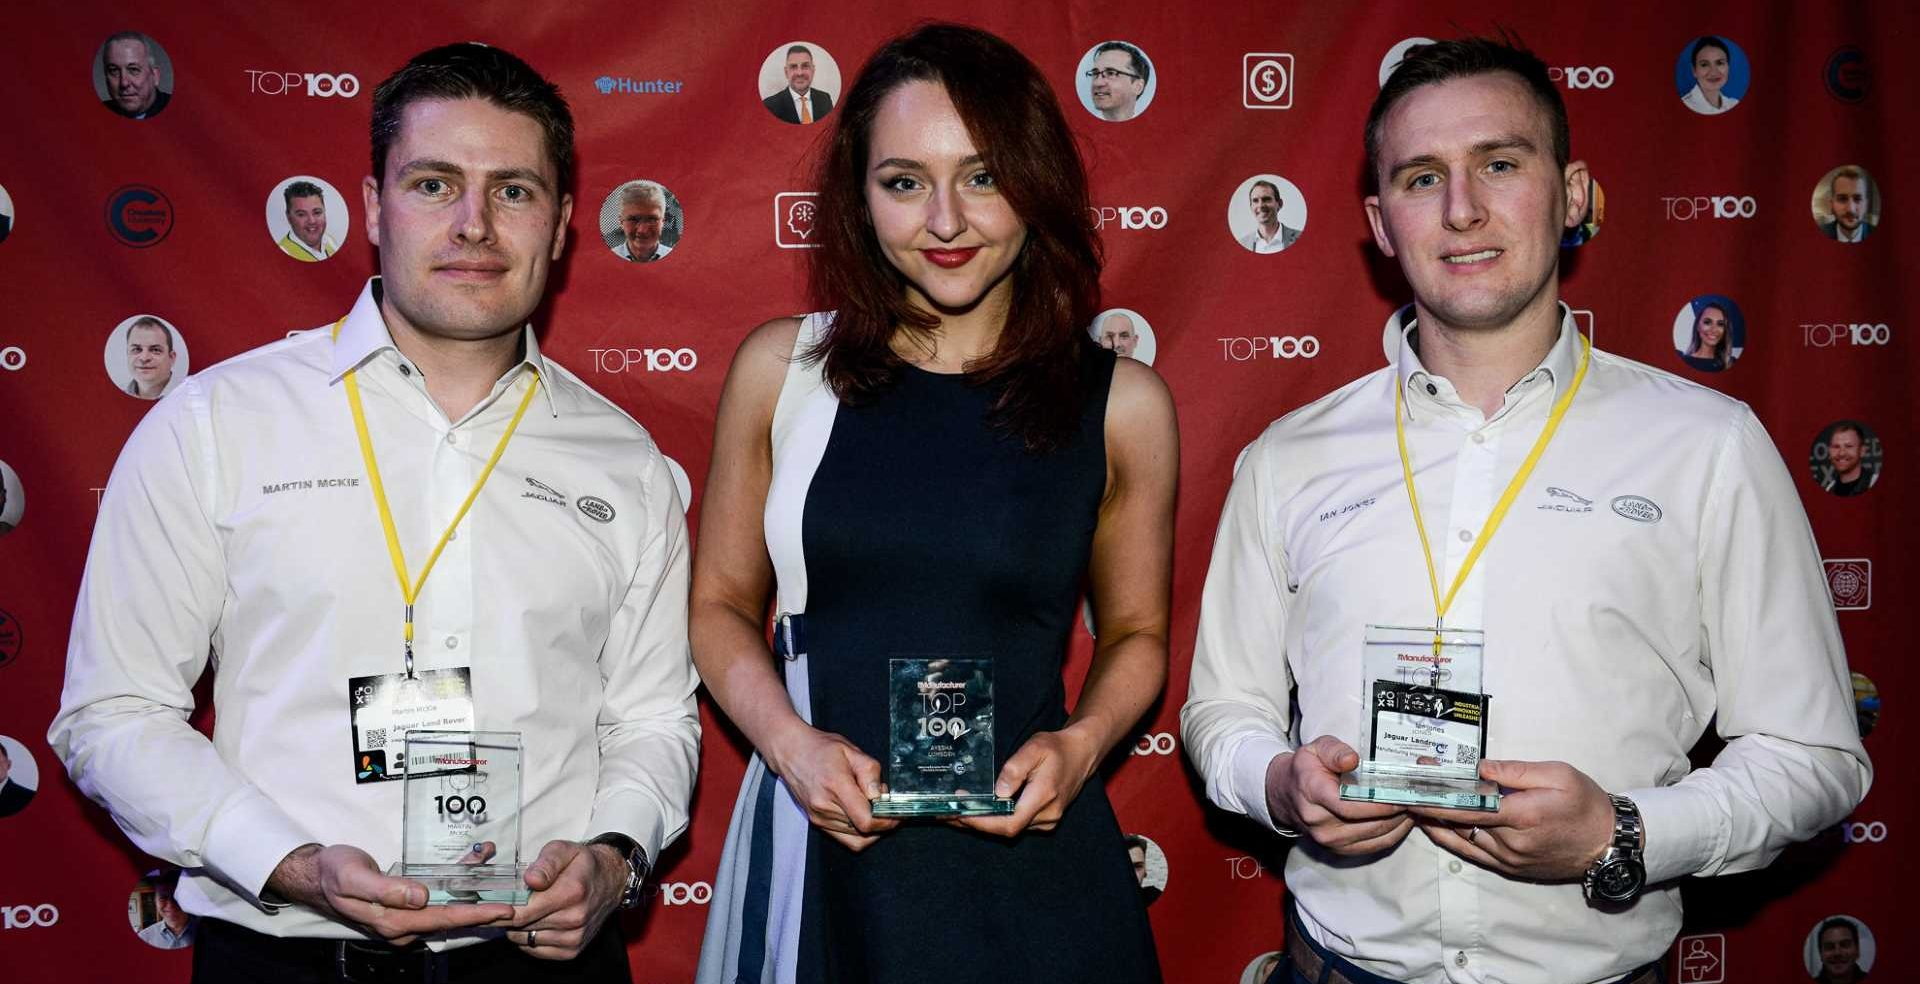 The Manufacturer Top 100 2019 - Exemplar Ayesha Lumsden with two colleagues from JLR who were also honoured, Martin McKie (L) and Ian Jones (R).